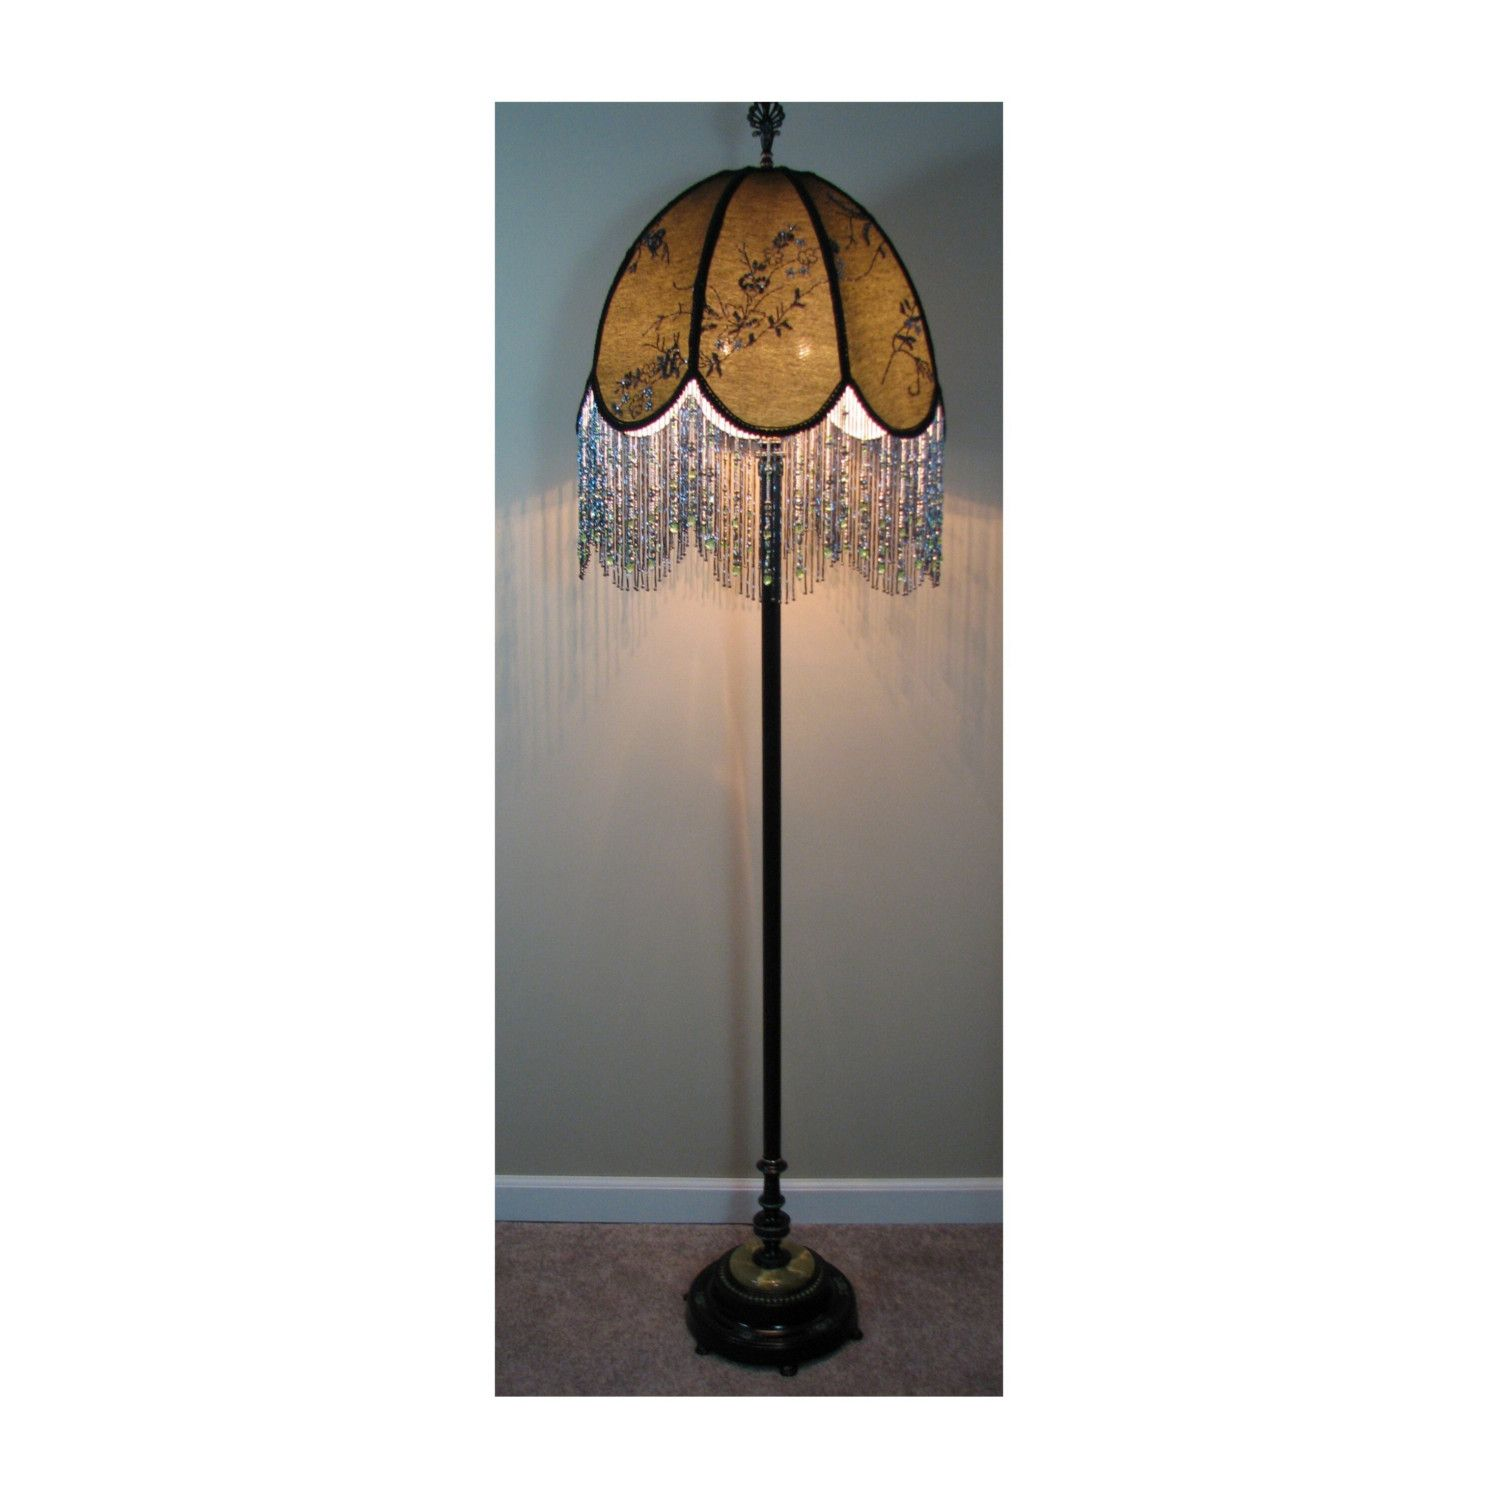 Vintage floor lamp with victorian lamp shade evening in the vintage floor lamp with victorian lamp shade evening in the orient 0409 210000 mozeypictures Images